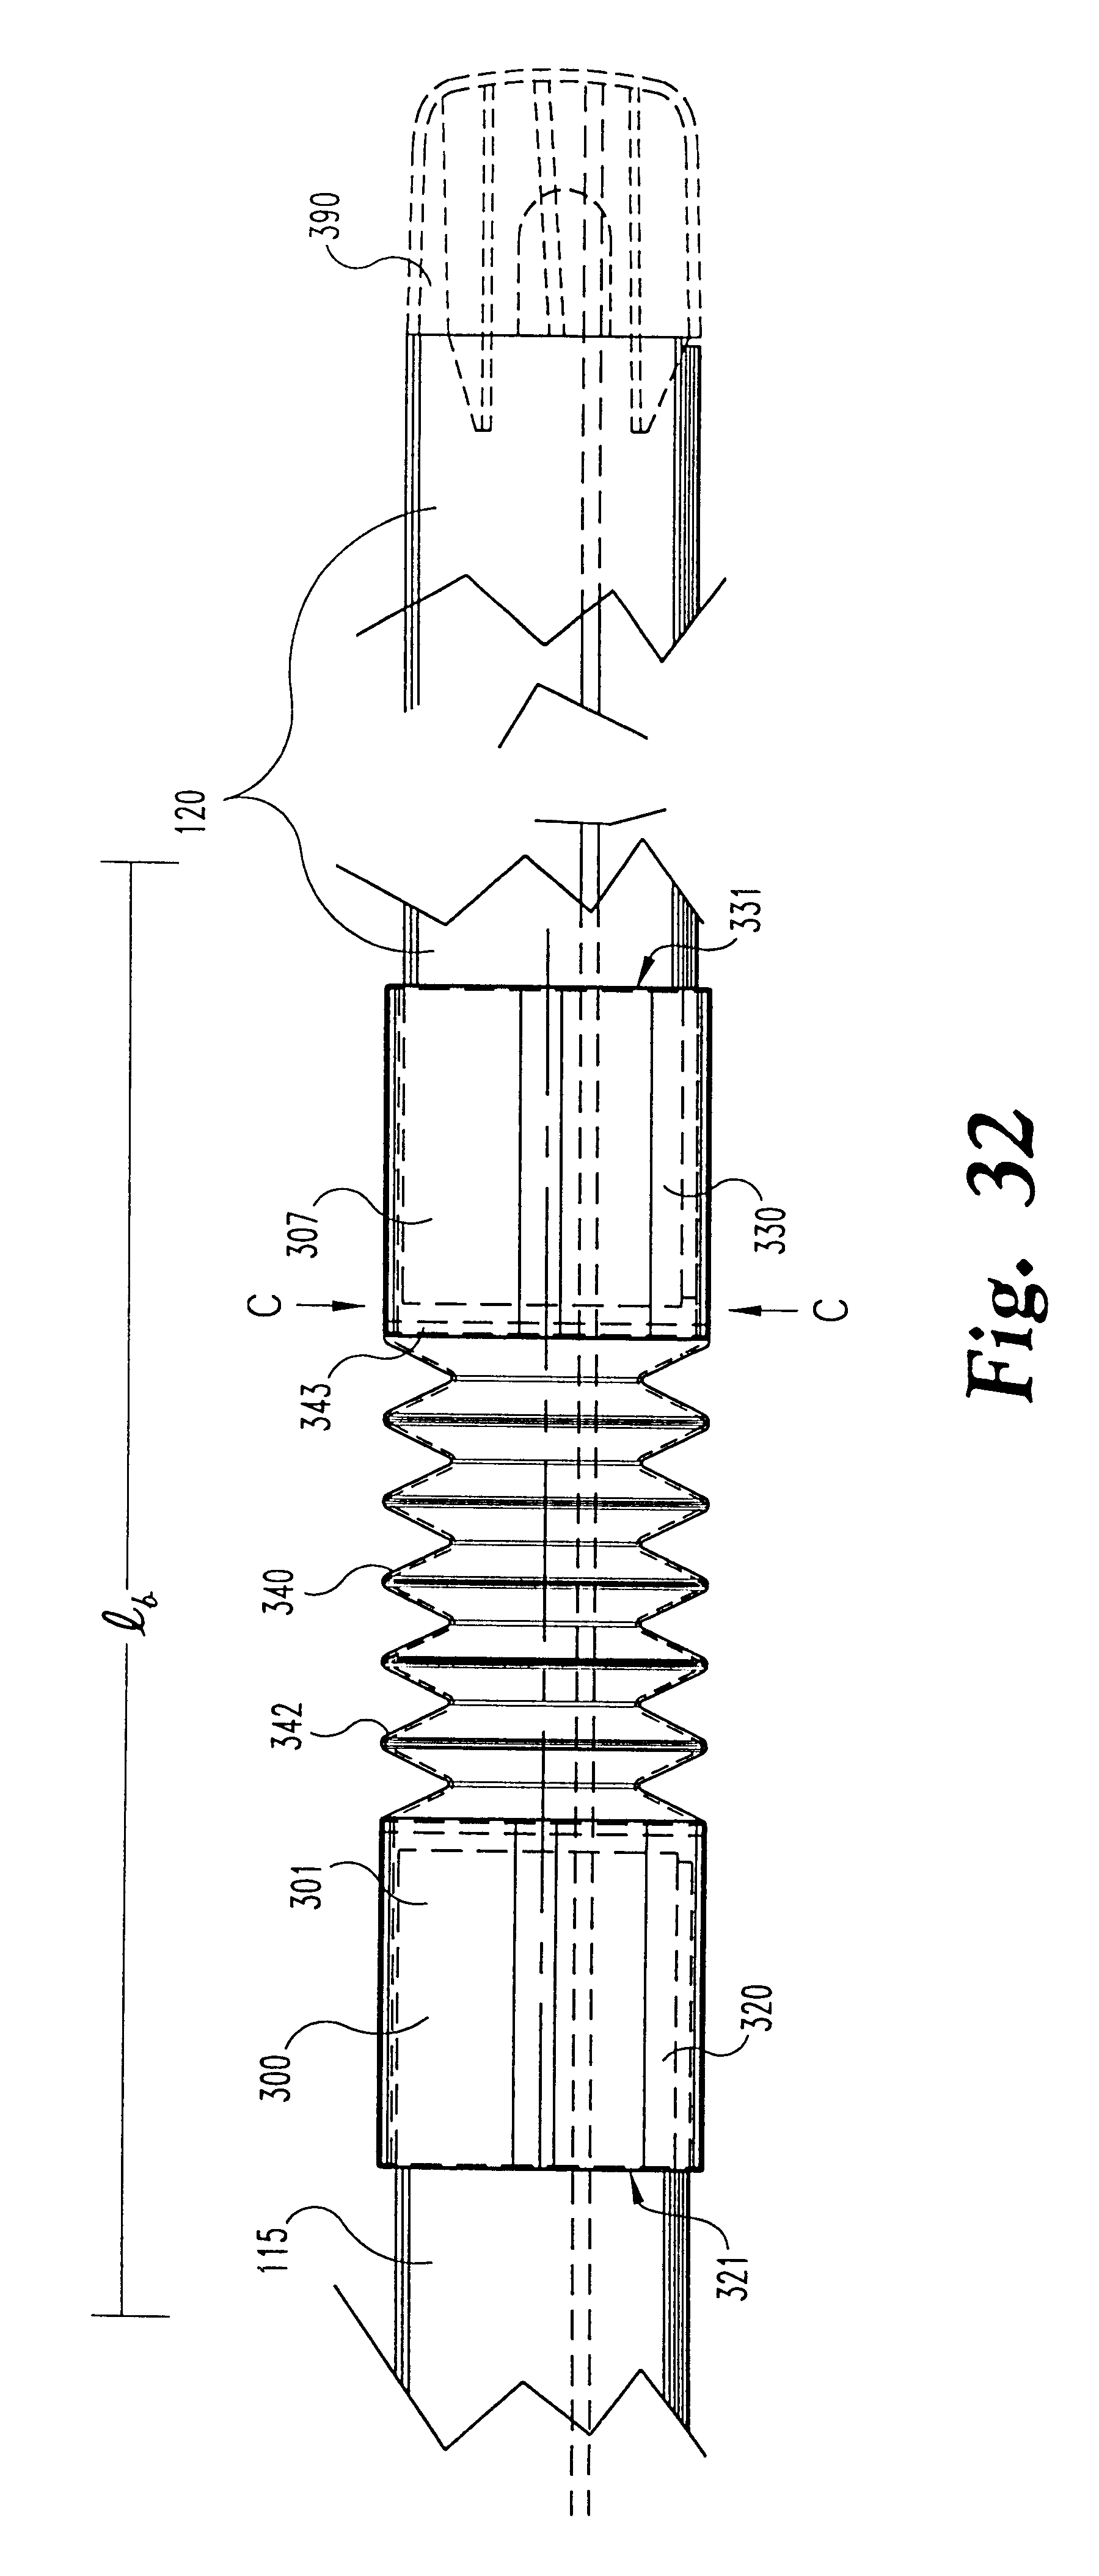 patent us6348658 - electrical raceway assembly